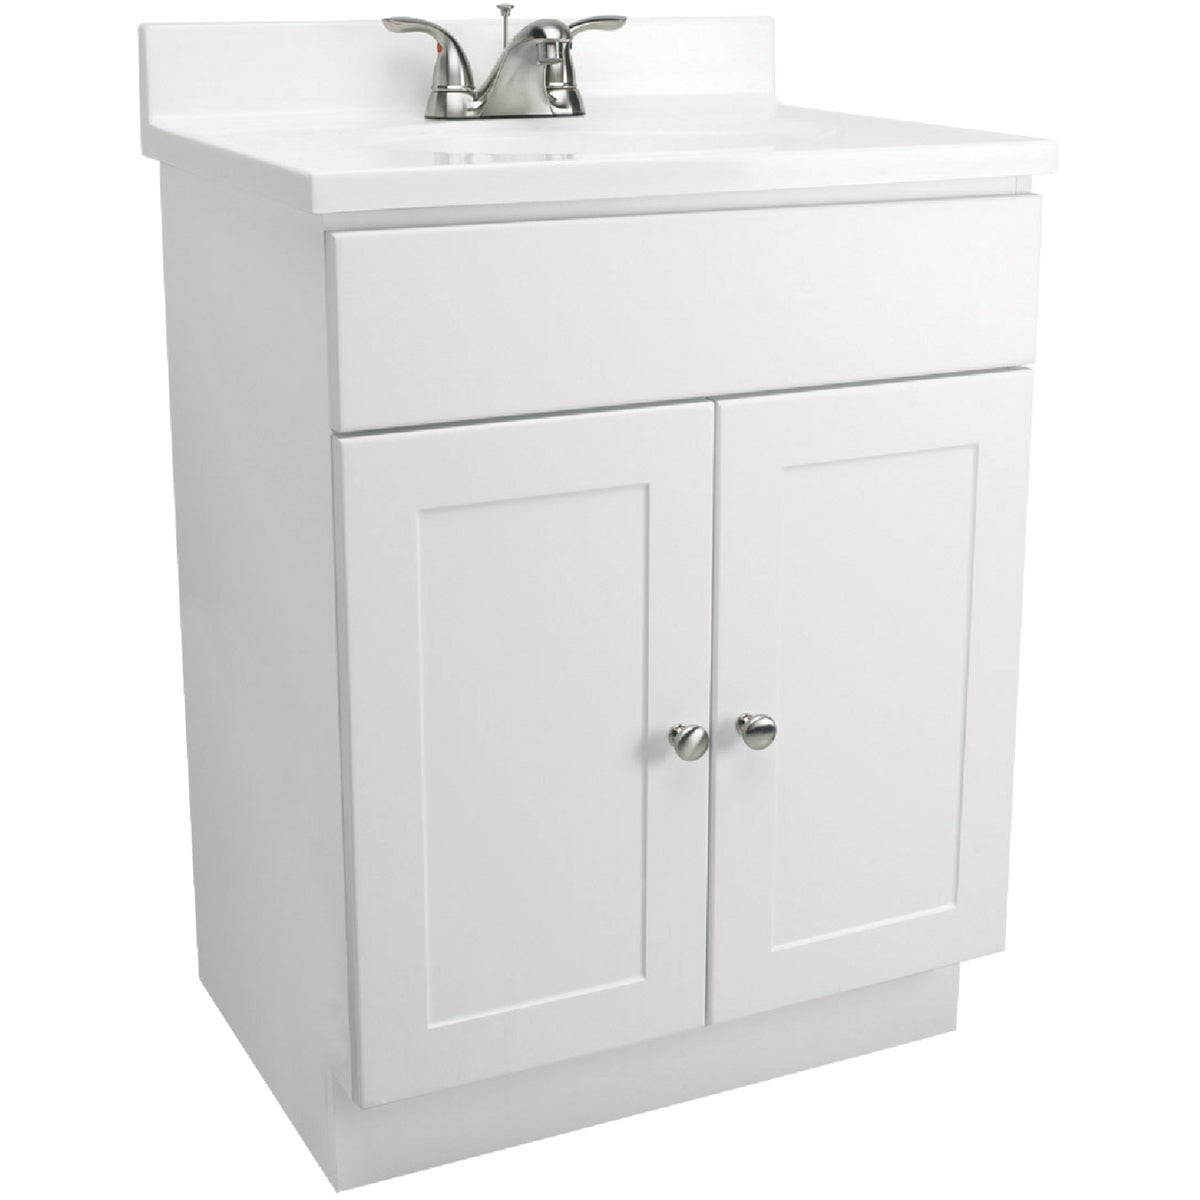 WHITE COMBO VANITY - 541615 by Design House  Dhi